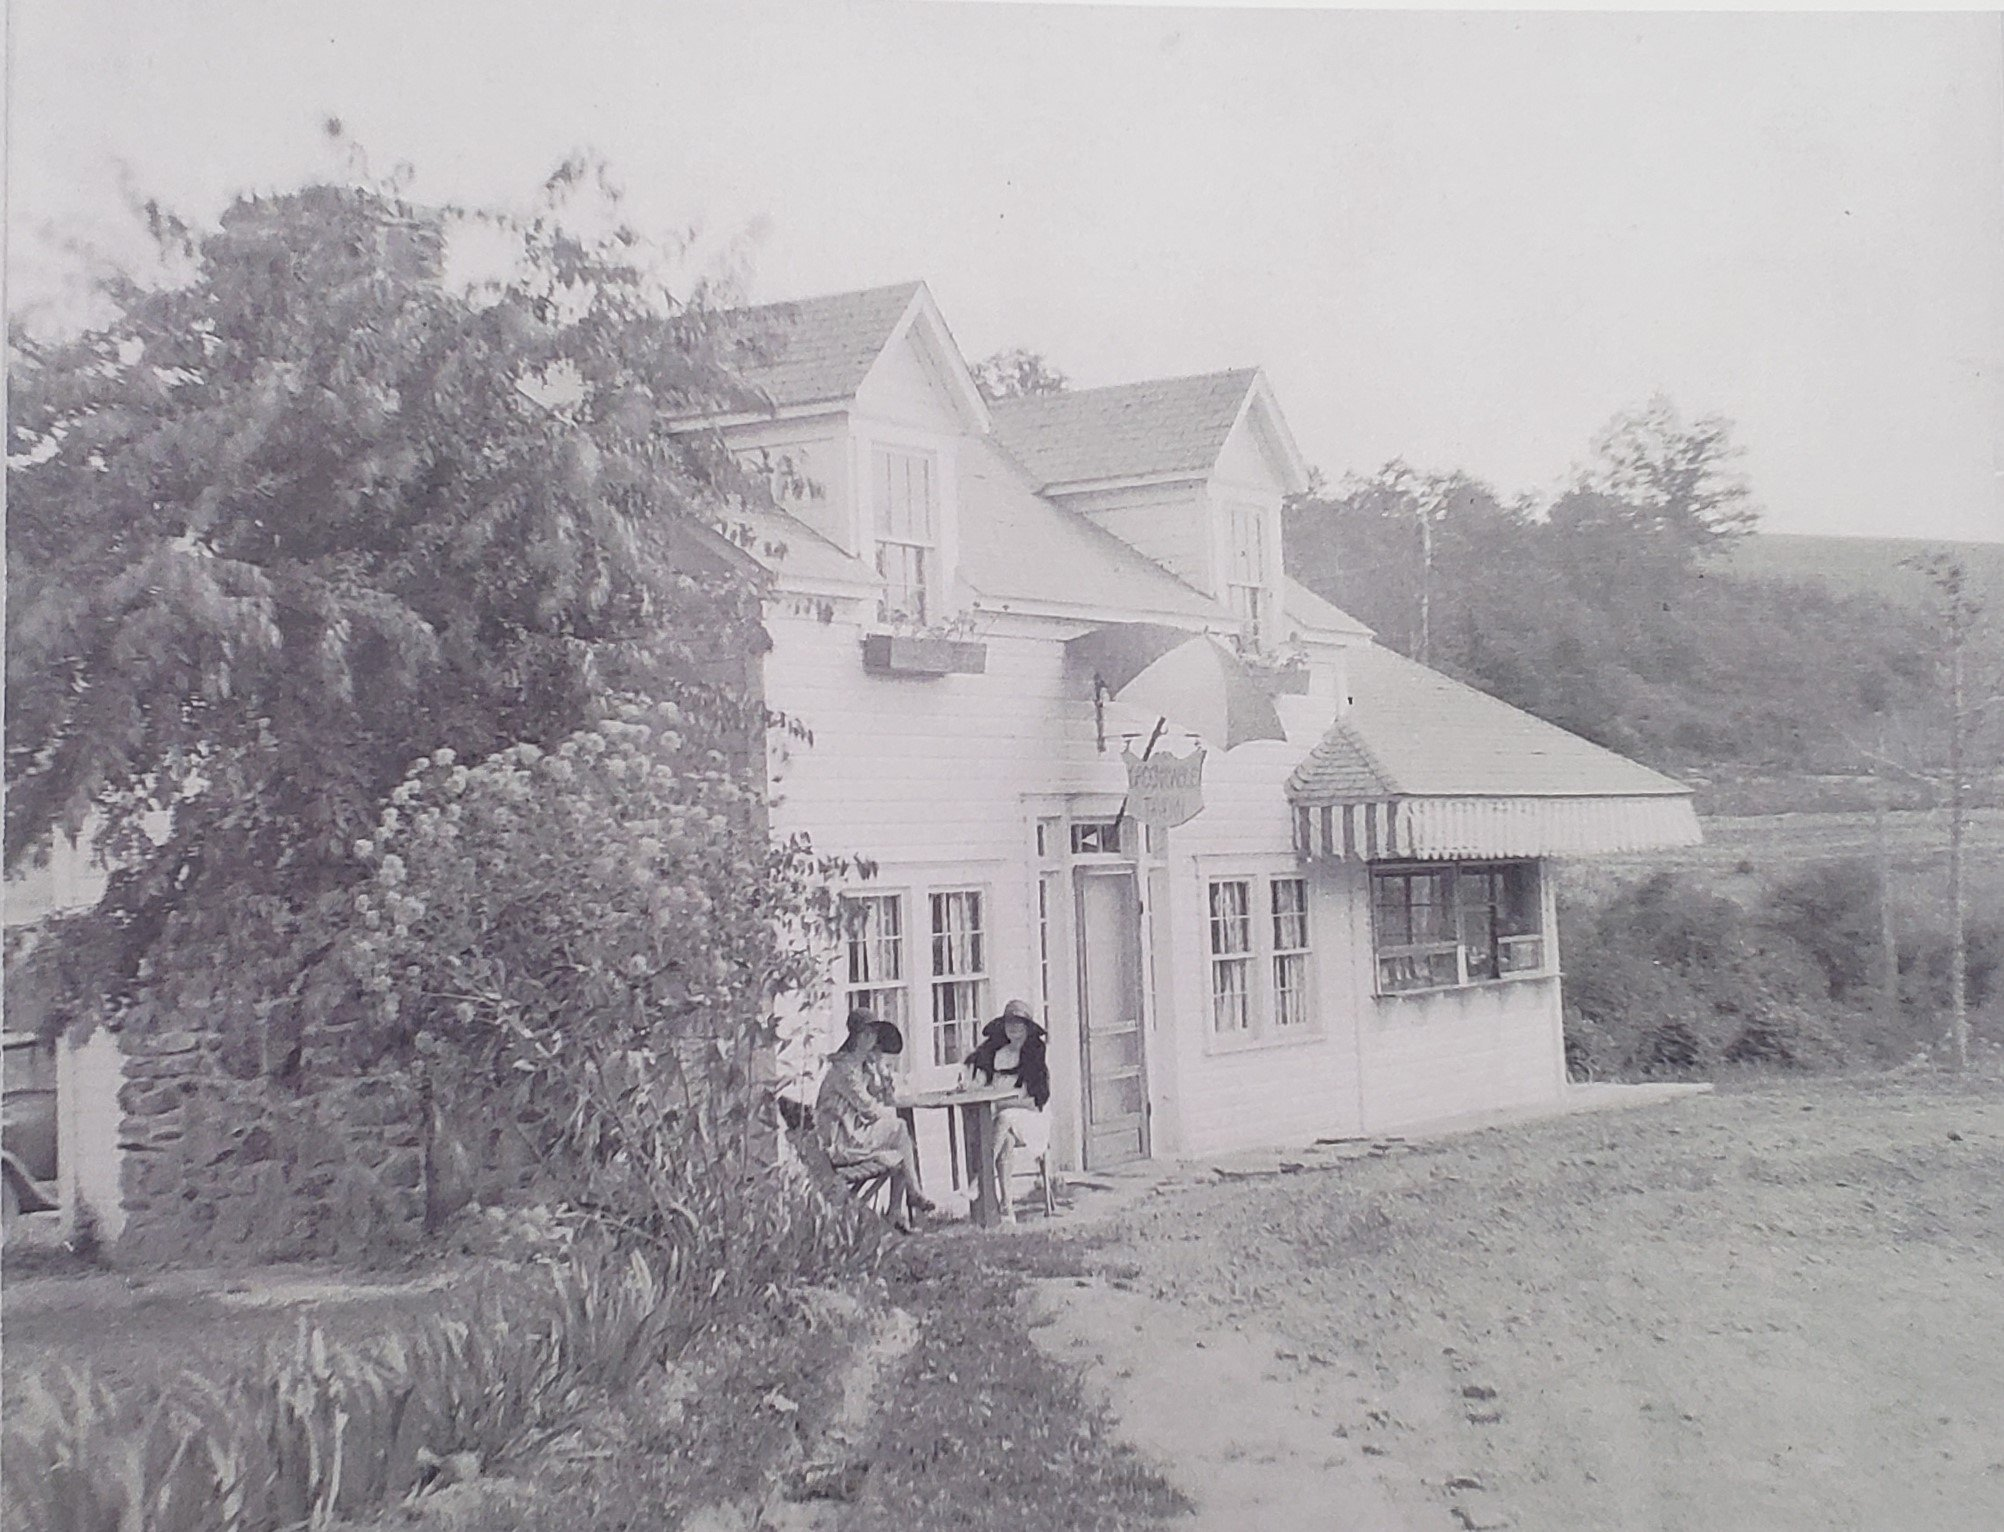 'Green Gables Tavern' after the dining room was added to the stand after a successful first year.  (Lincoln Highway Heritage Corridor Archives)